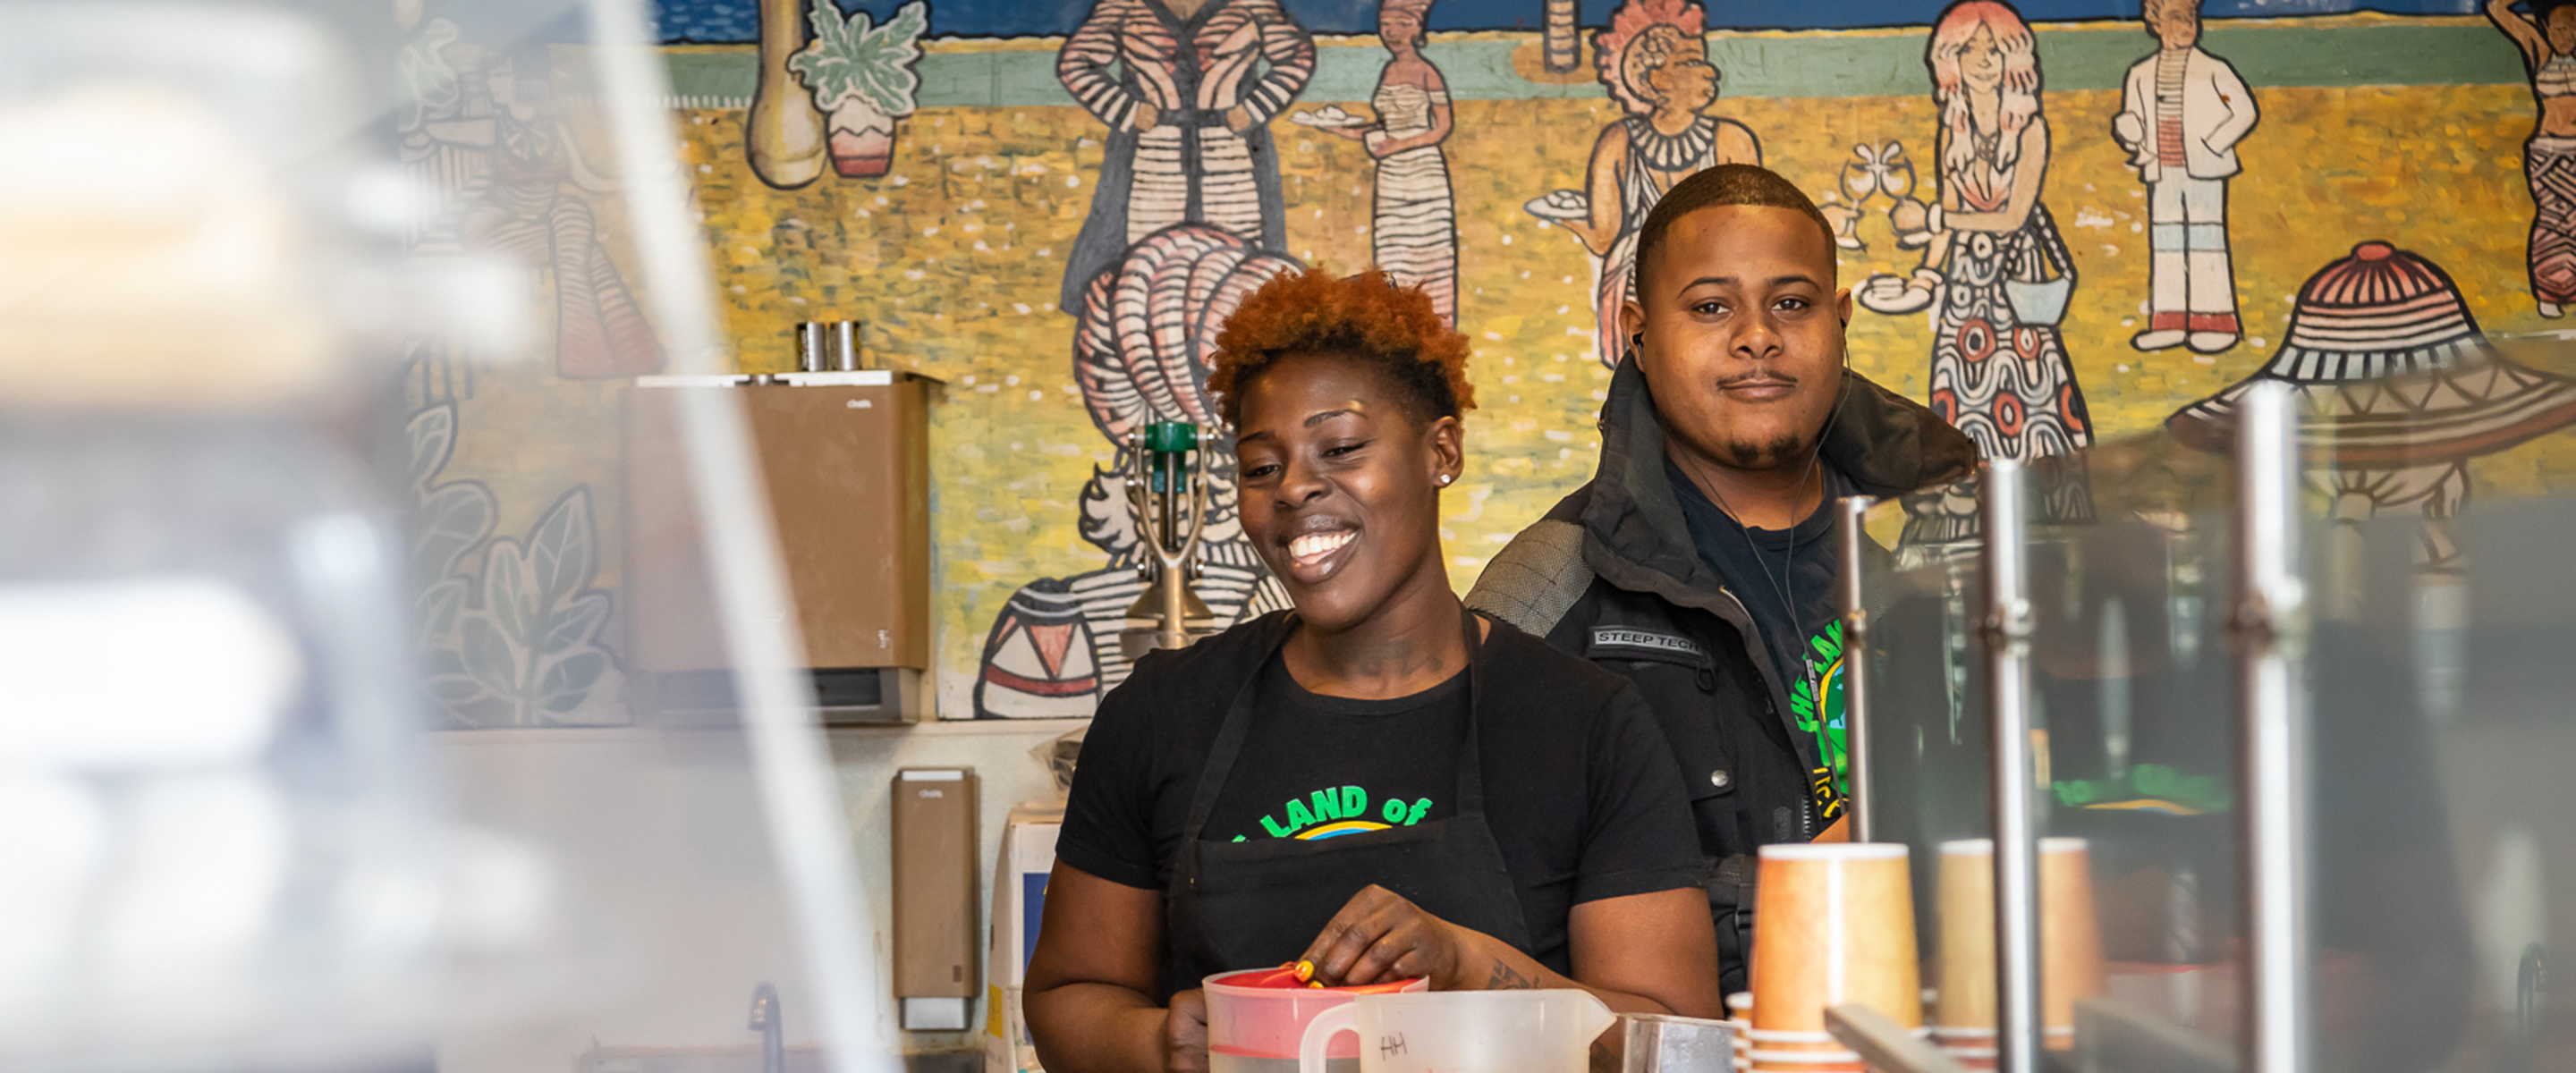 Land of Kush: A Baltimore Restaurant Sees the Future in Soul Food